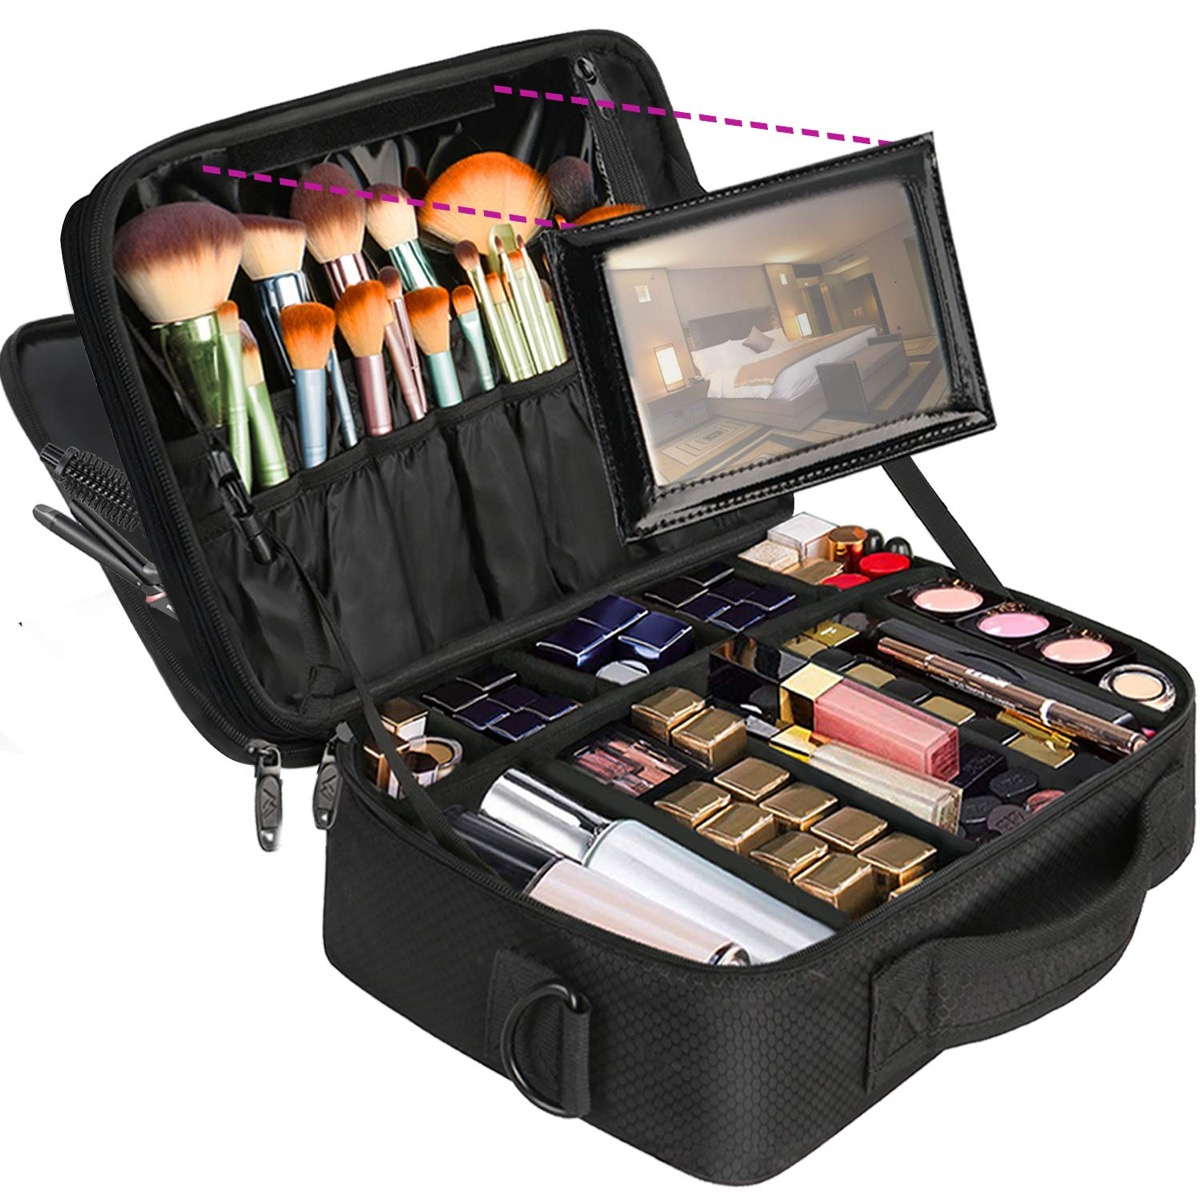 Black makeup kit full of products